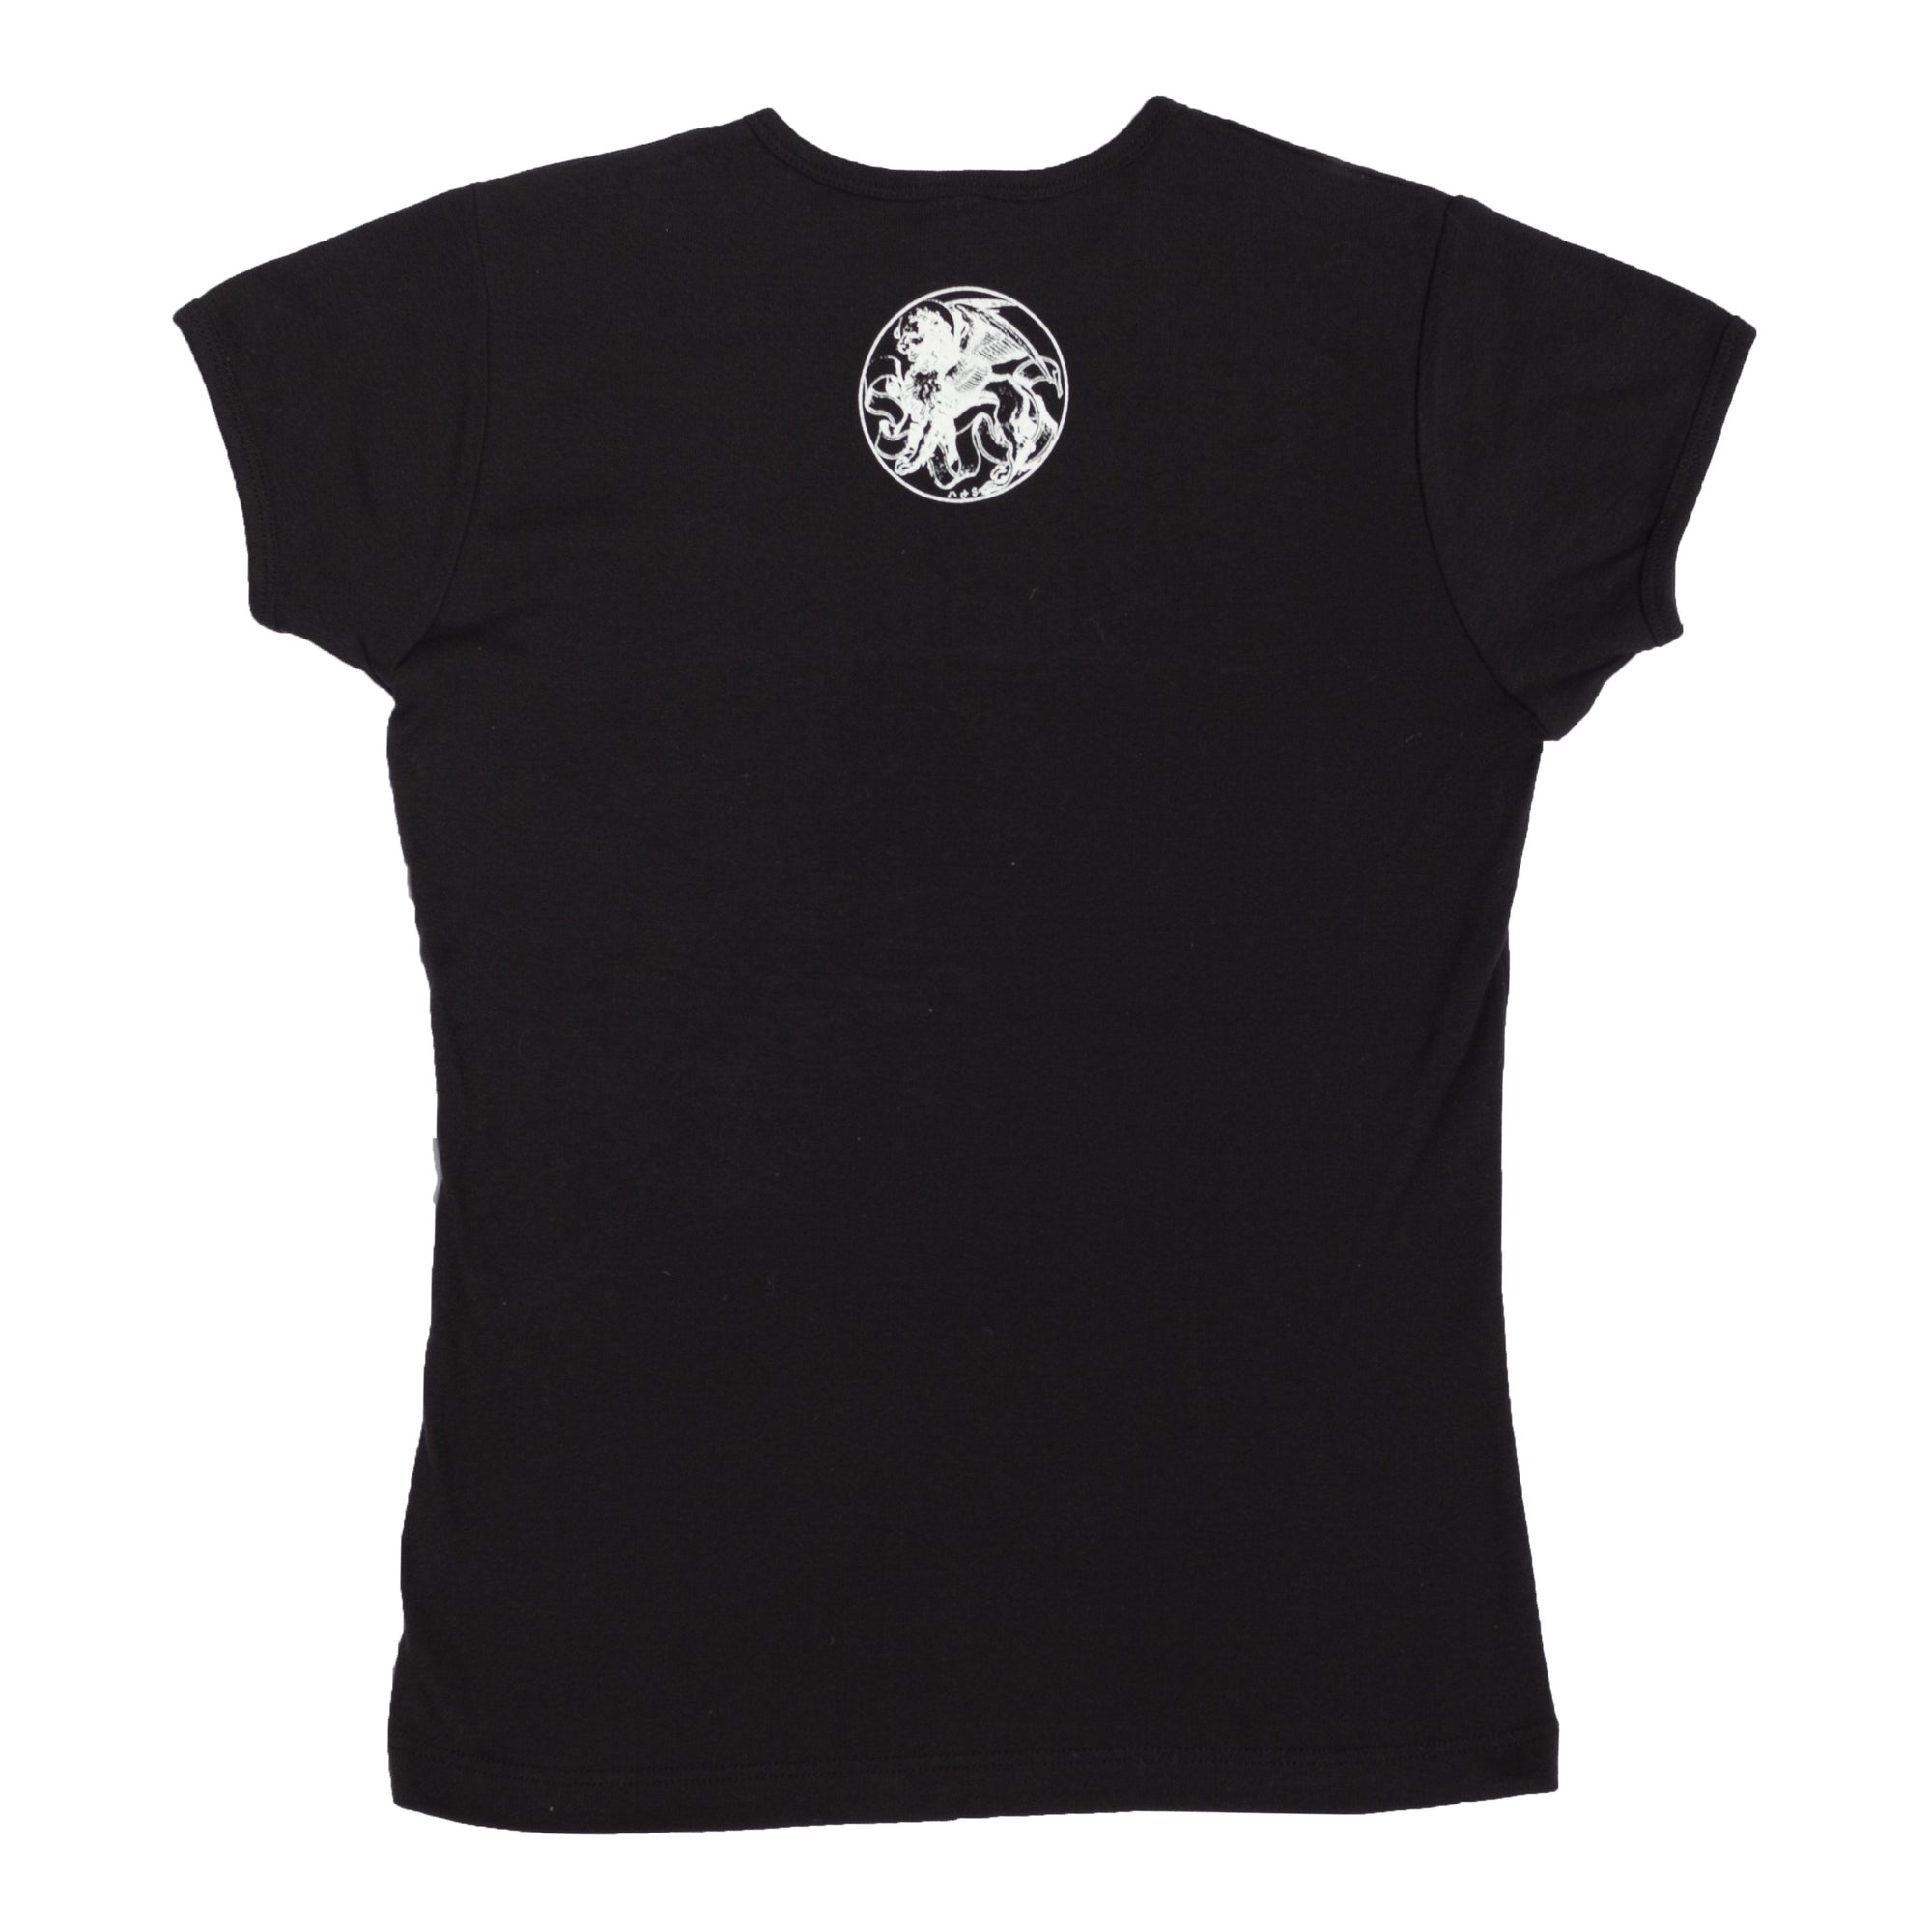 "Aesop Rock ""Letter A"" Girl Cut T-Shirt"